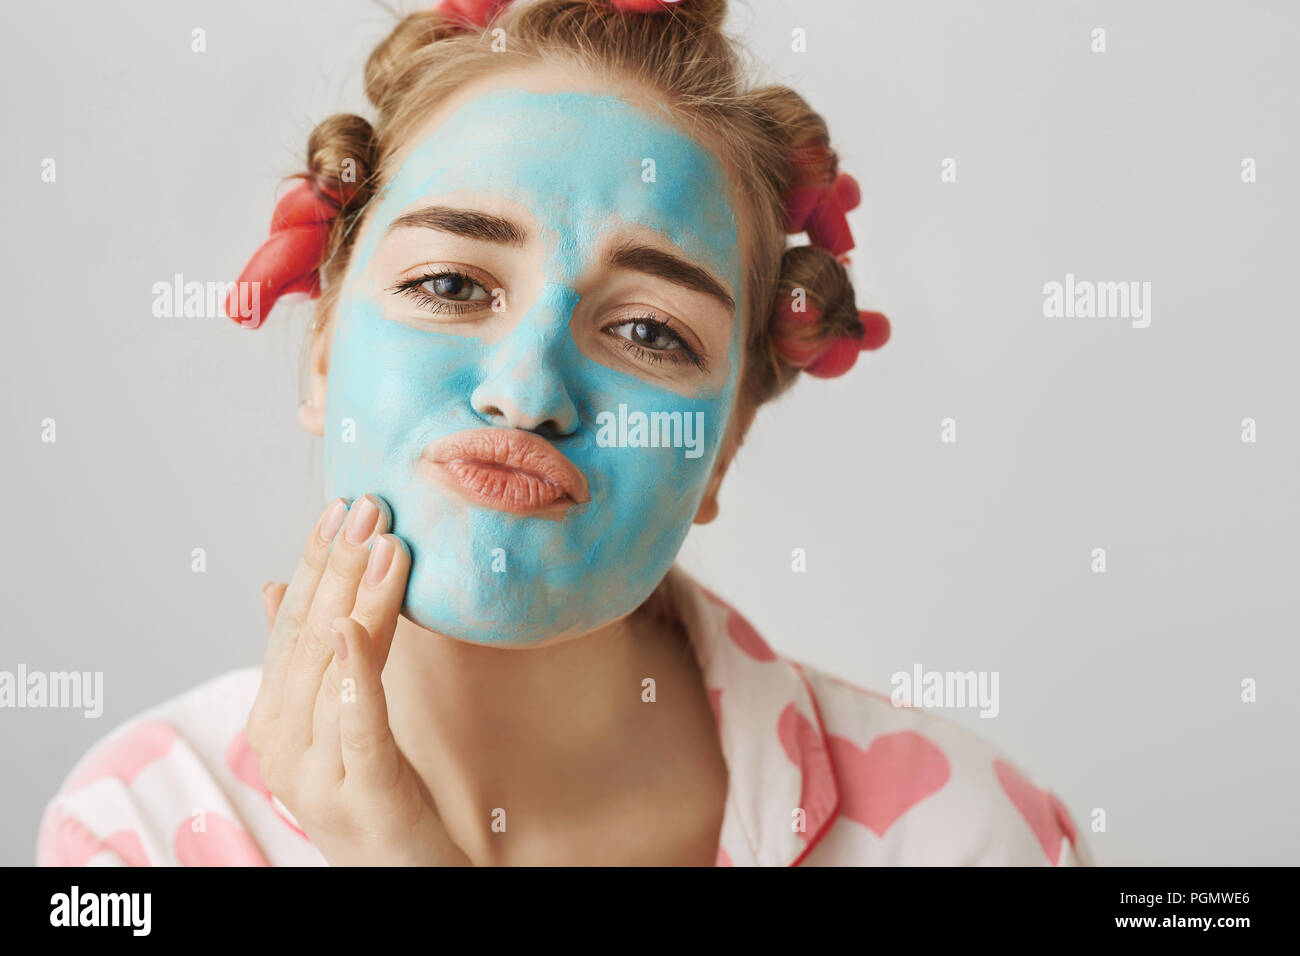 Close-up portrait of funny white woman with hair-curlers, wearing nightwear and folding lips while applying face mask with hand, looking at camera as if in mirror. Girl decided to take day off. - Stock Image